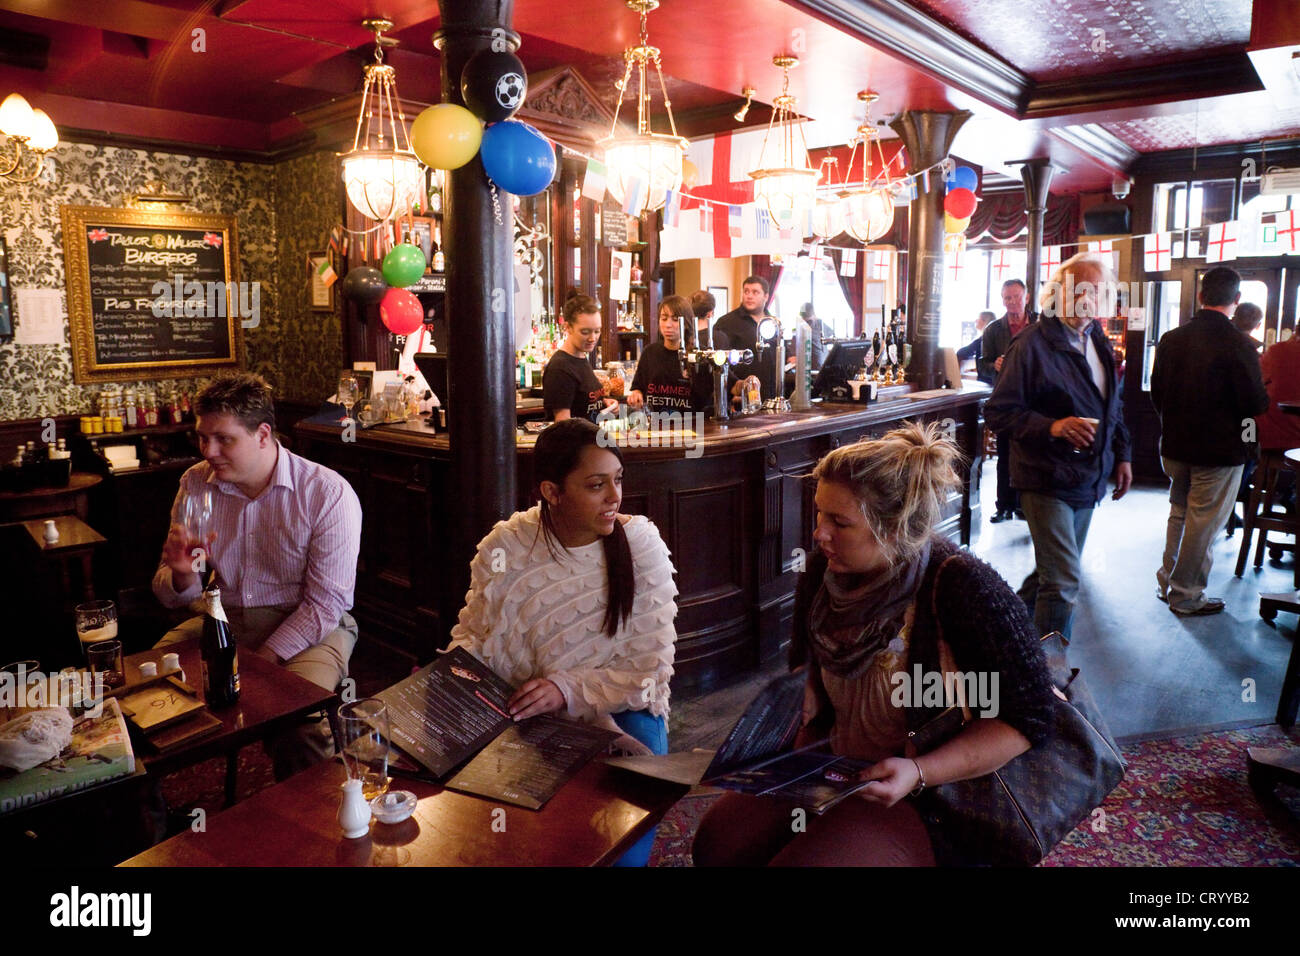 People having a drink in the Duke of York pub in Victoria, London UK - Stock Image